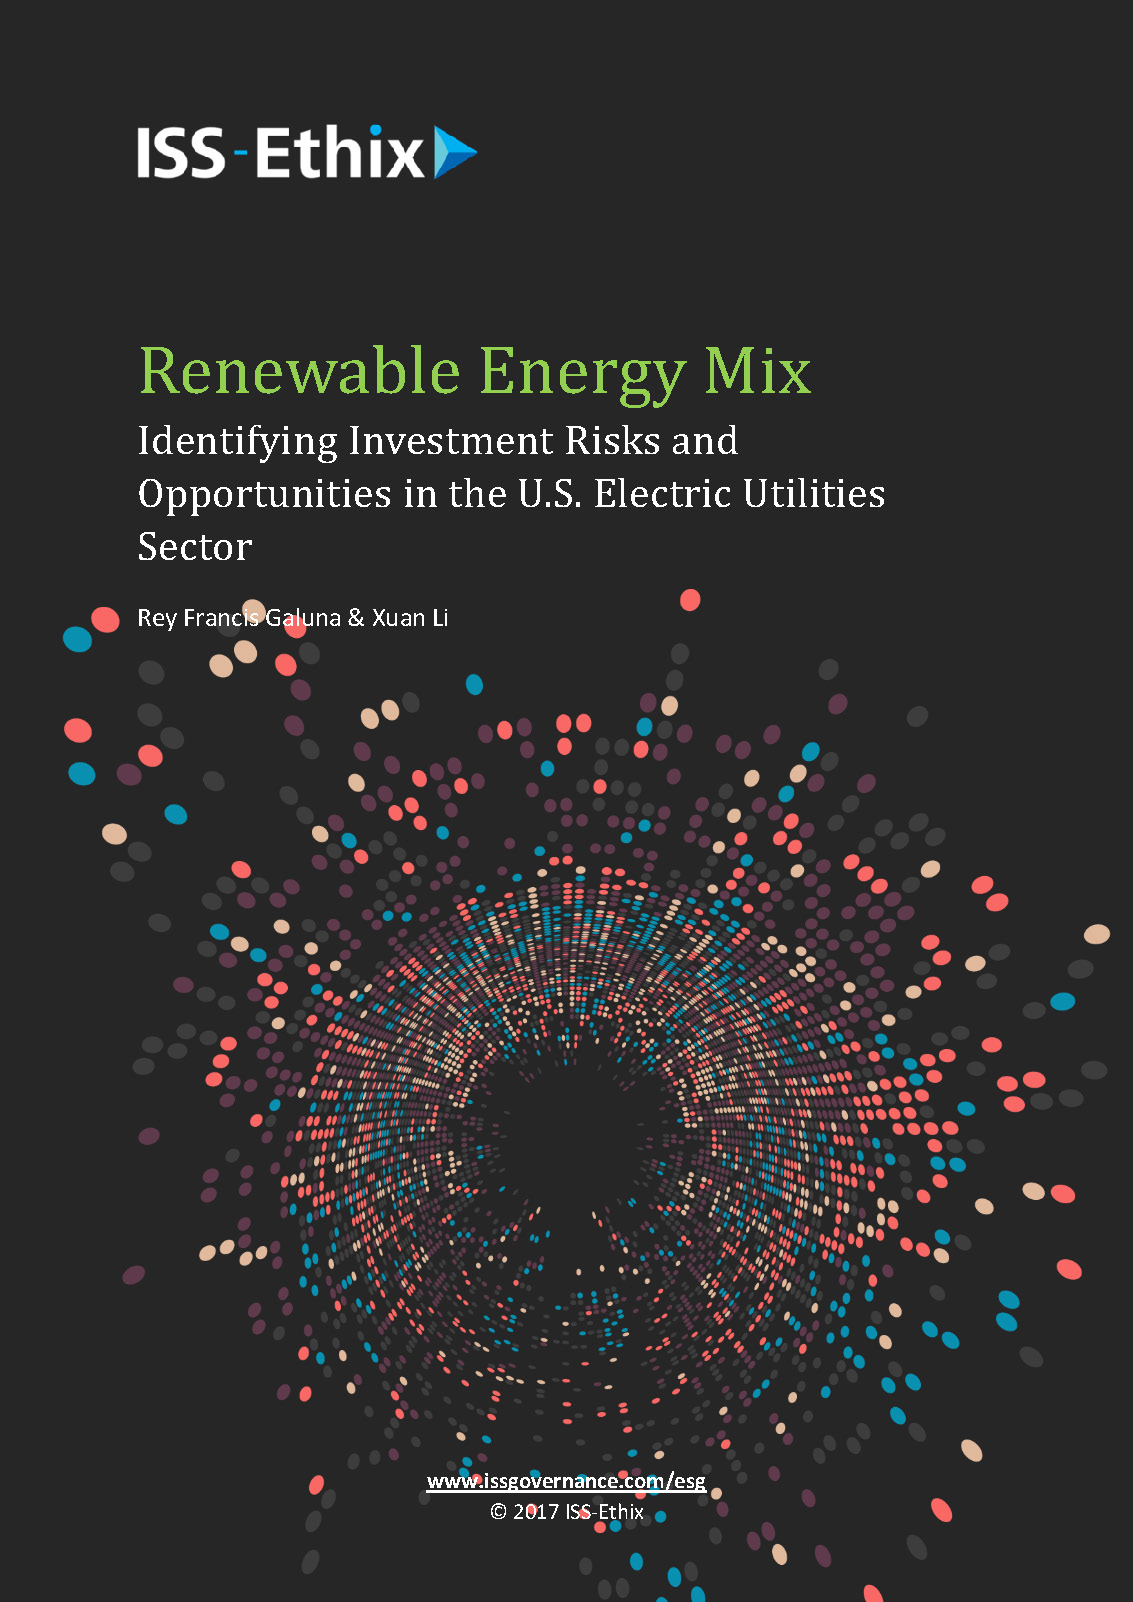 Renewable Energy Mix: Identifying Investment Risks and Opportunities in the U.S. Electric Utilities Sector